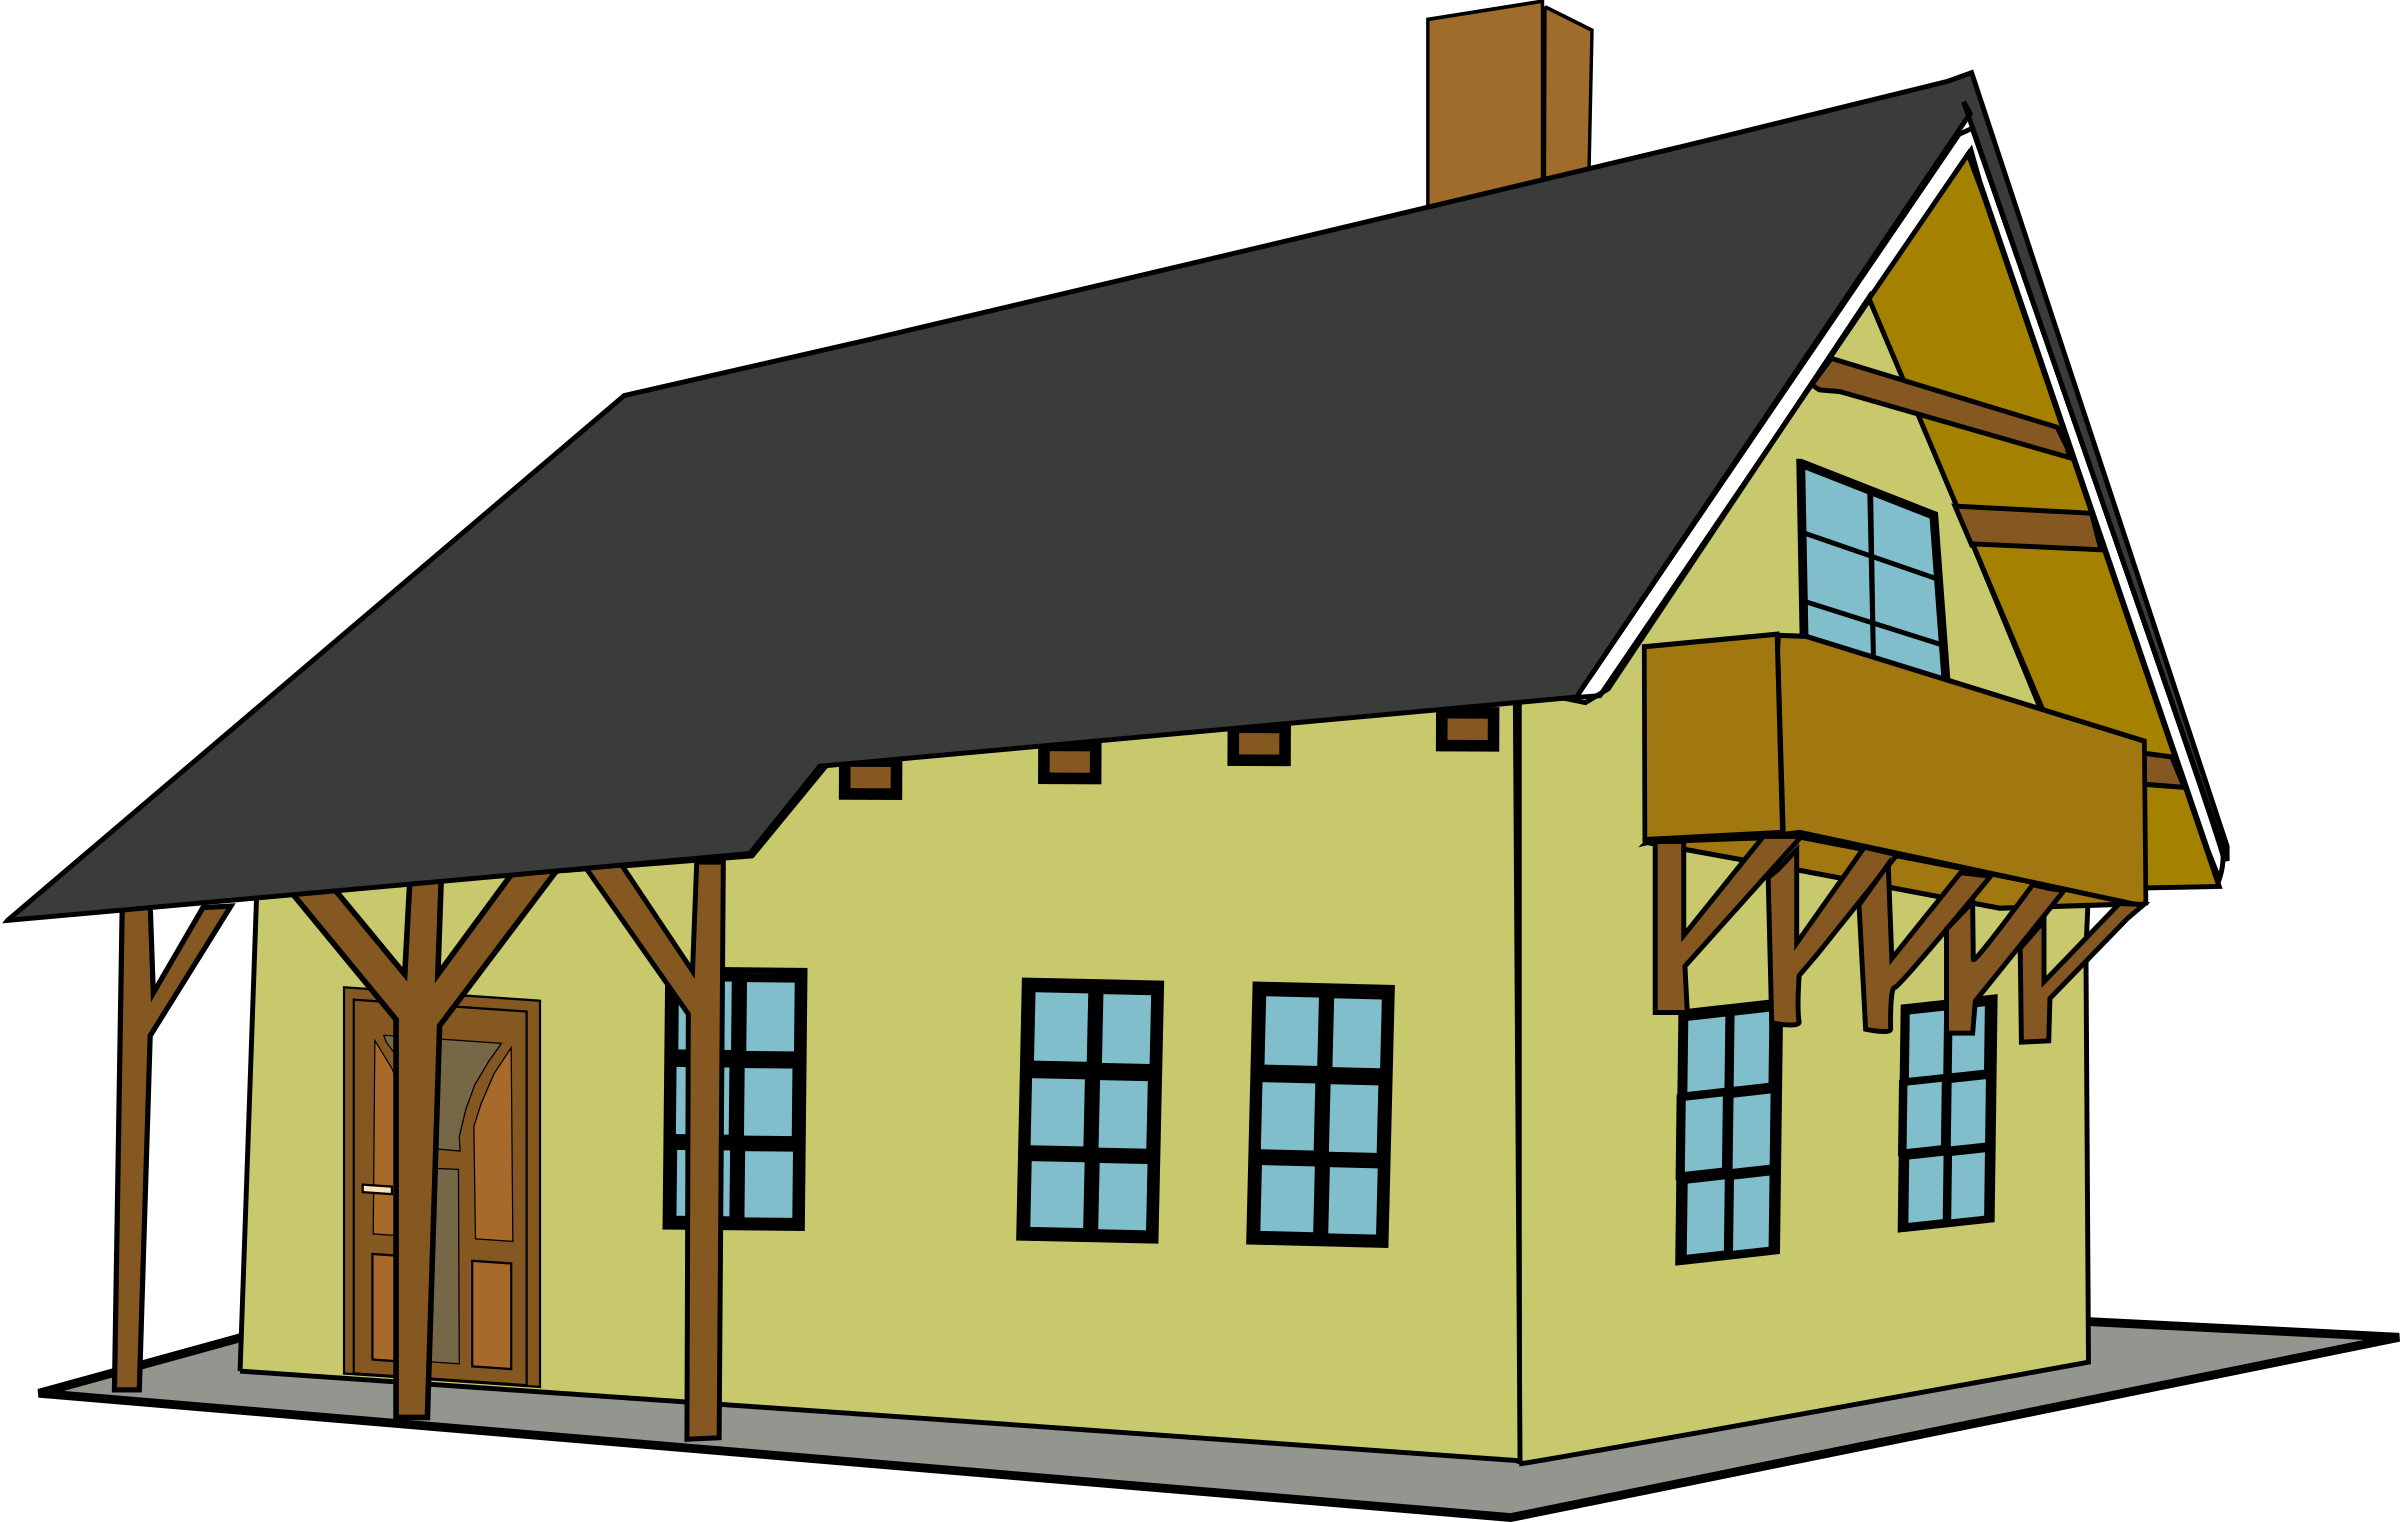 collection of sloping. Houses clipart yellow